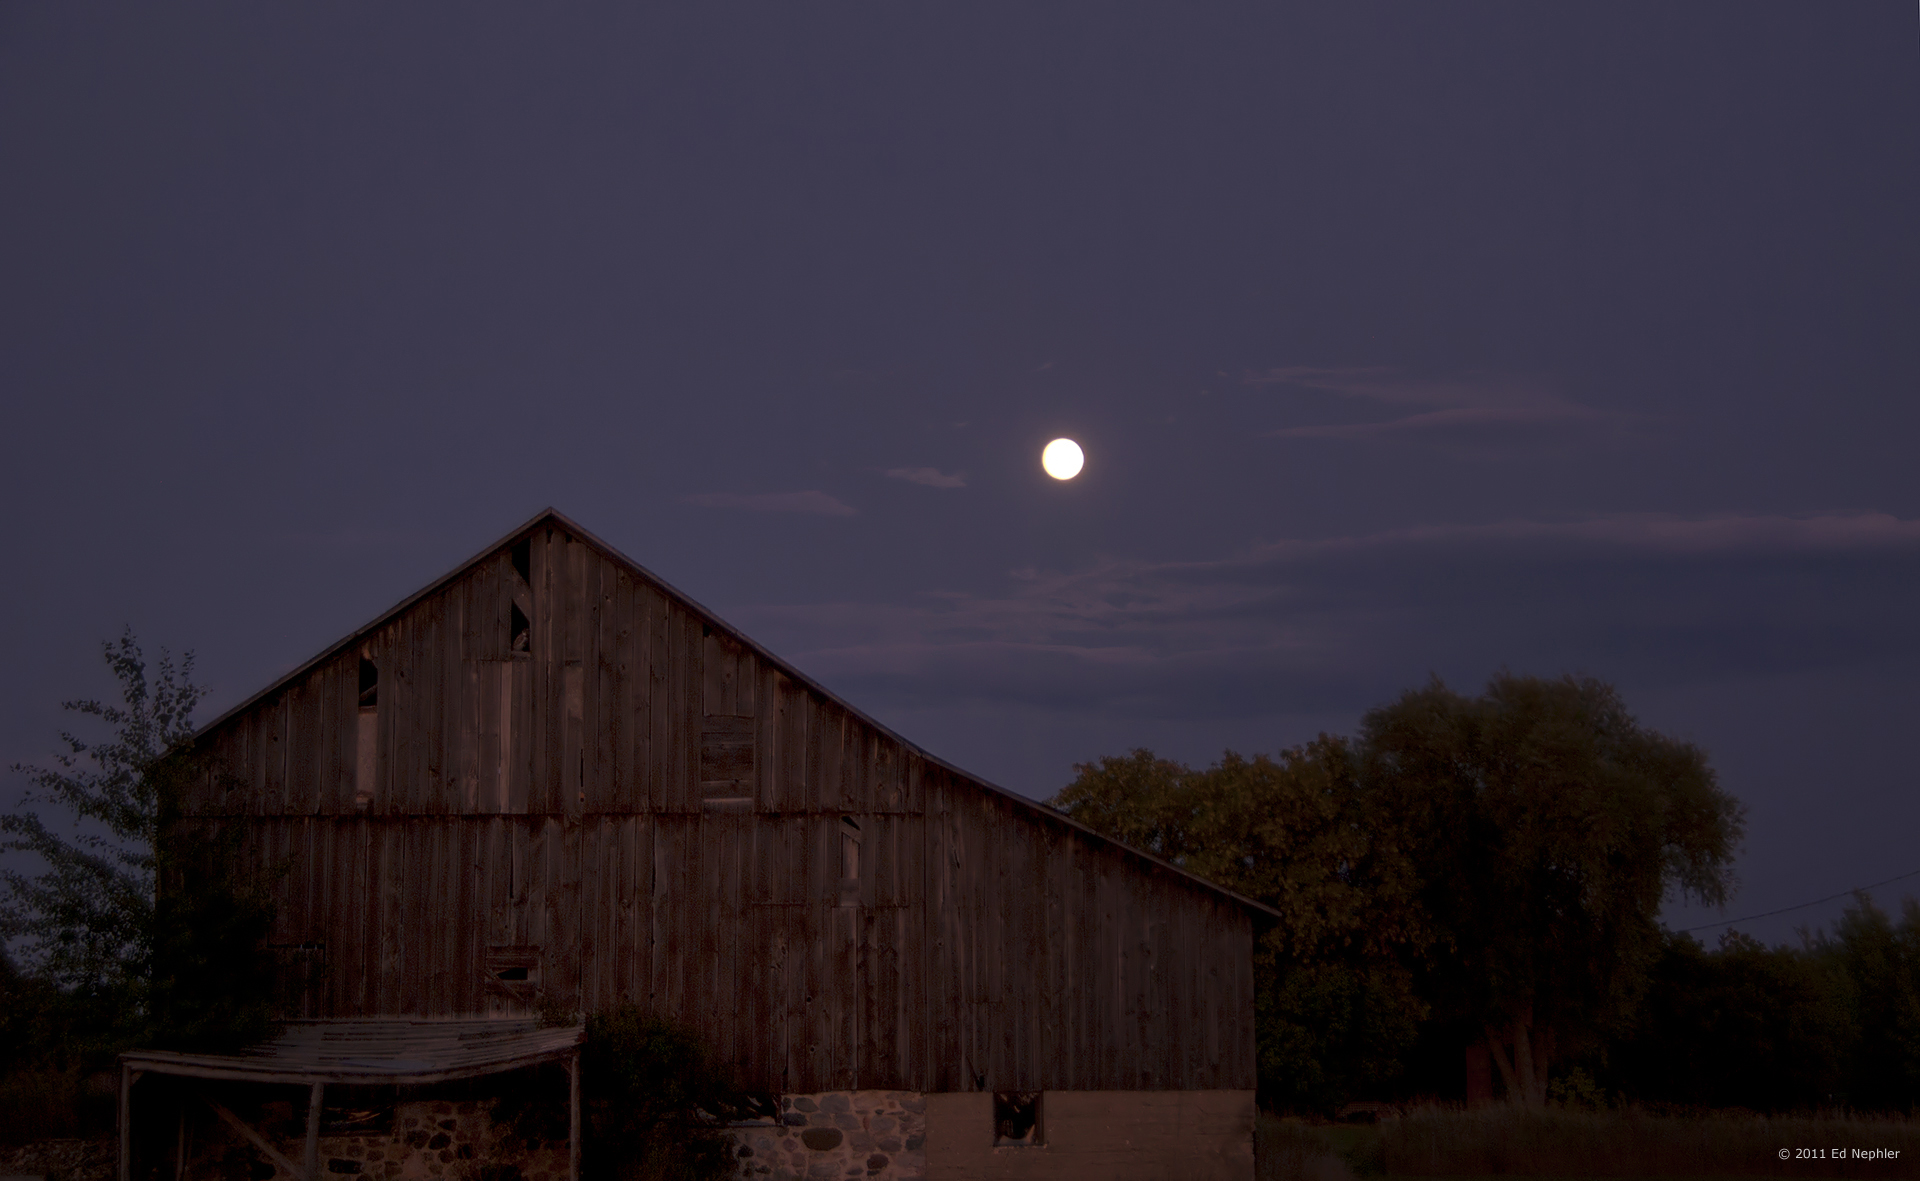 Harvest Moon Over Barn – Through My Eyes And Lens